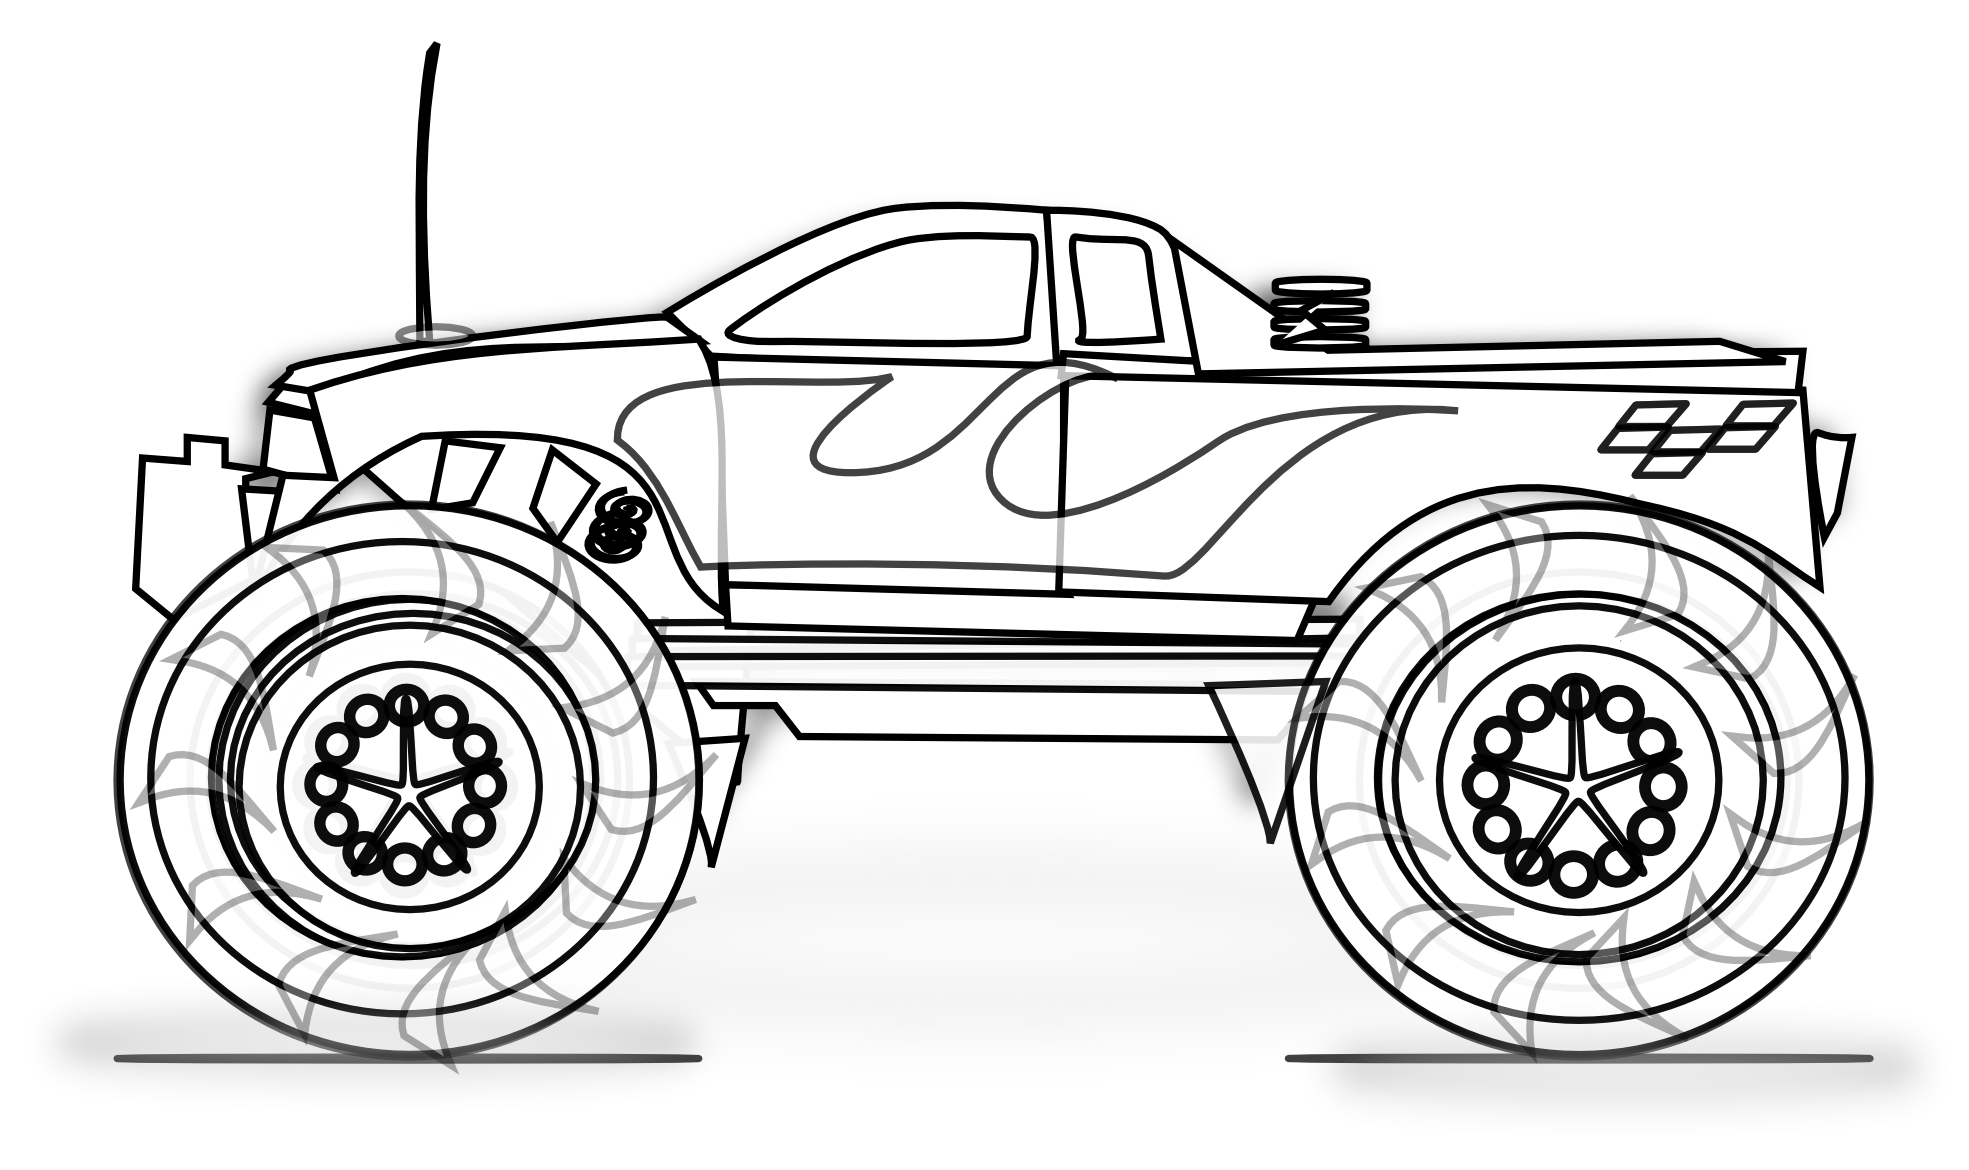 superman monster truck coloring pages - photo#14